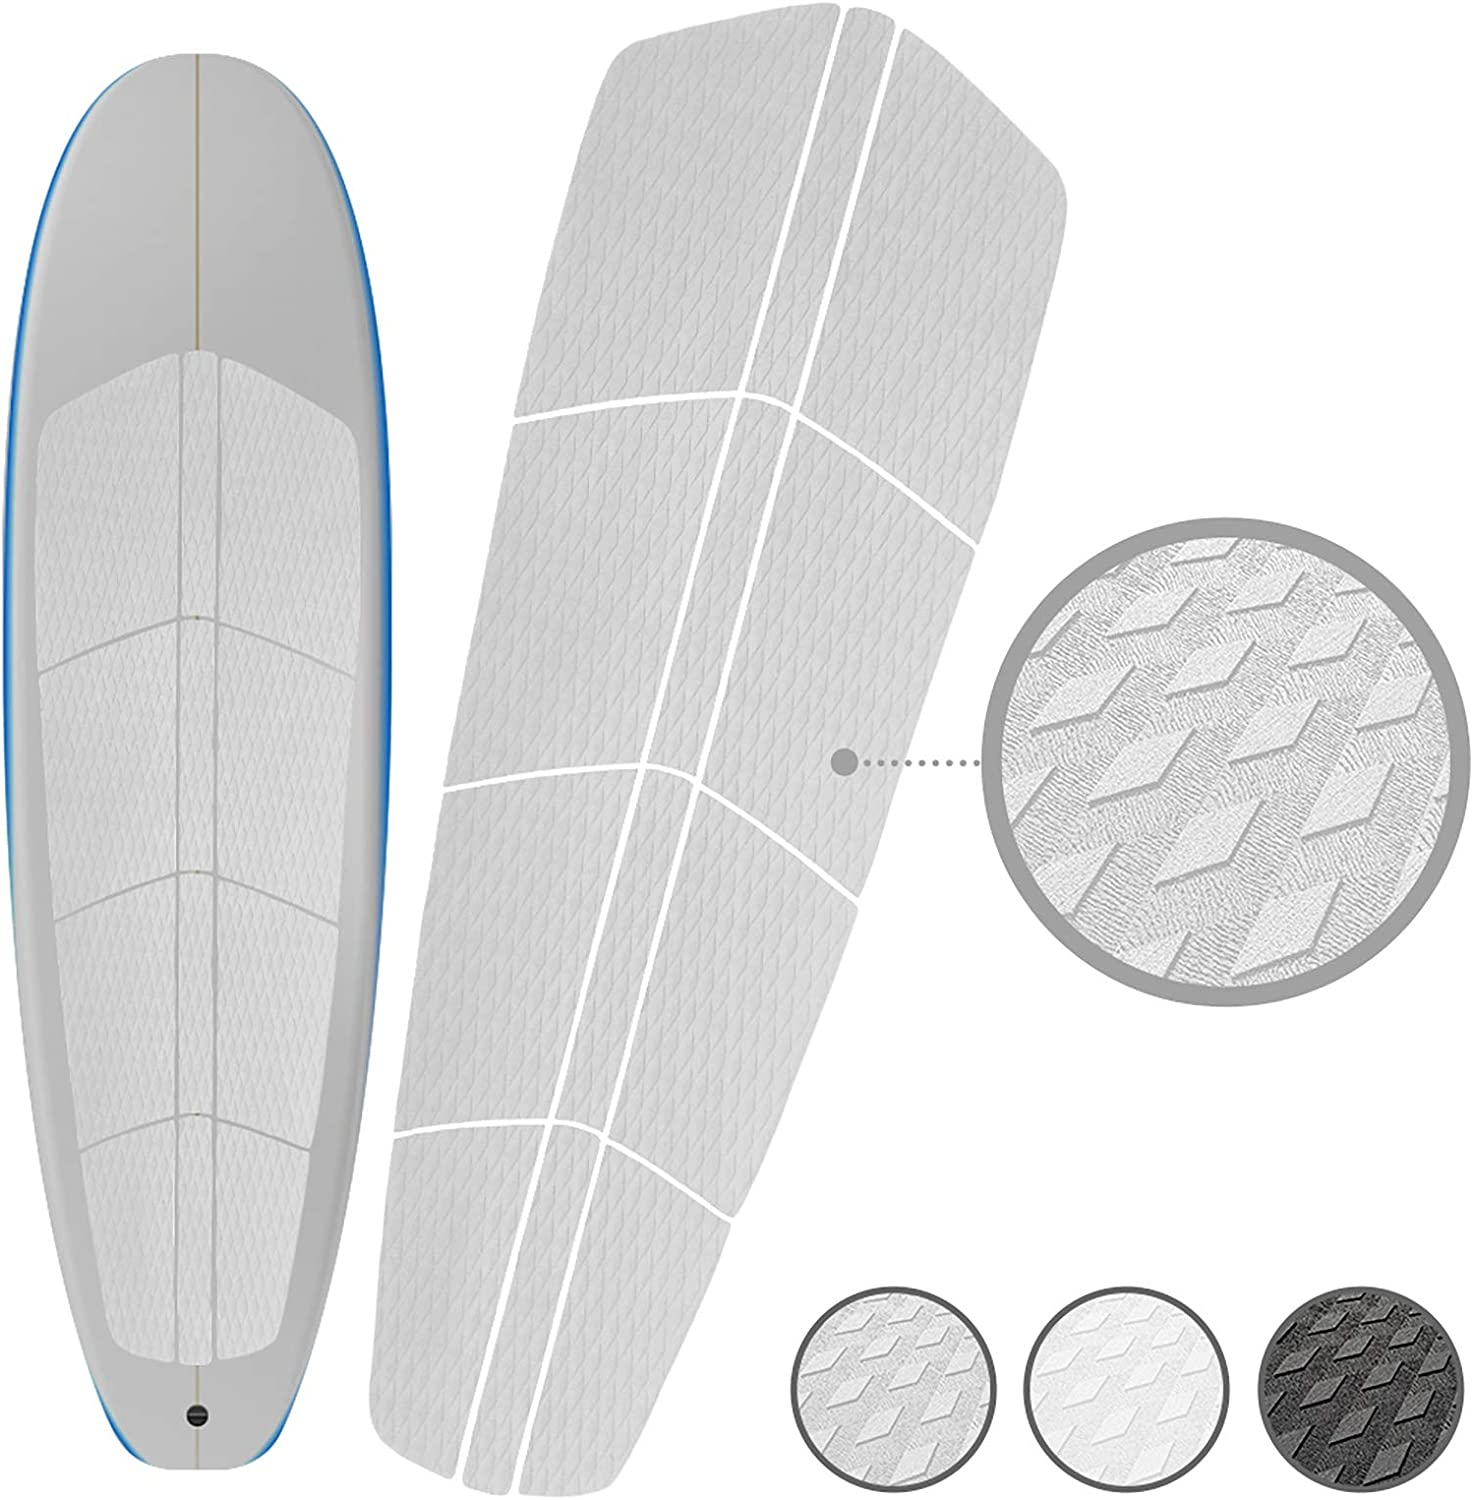 PUNT SURF Paddle Board SUP Traction Pad with 3M Adhesive – 12 Piece Customizable Deck Grip for Any Size Paddleboard. Provides Ultimate Traction and Comfort in Just Minutes. – Guaranteed to Stick on your Paddleboard Forever